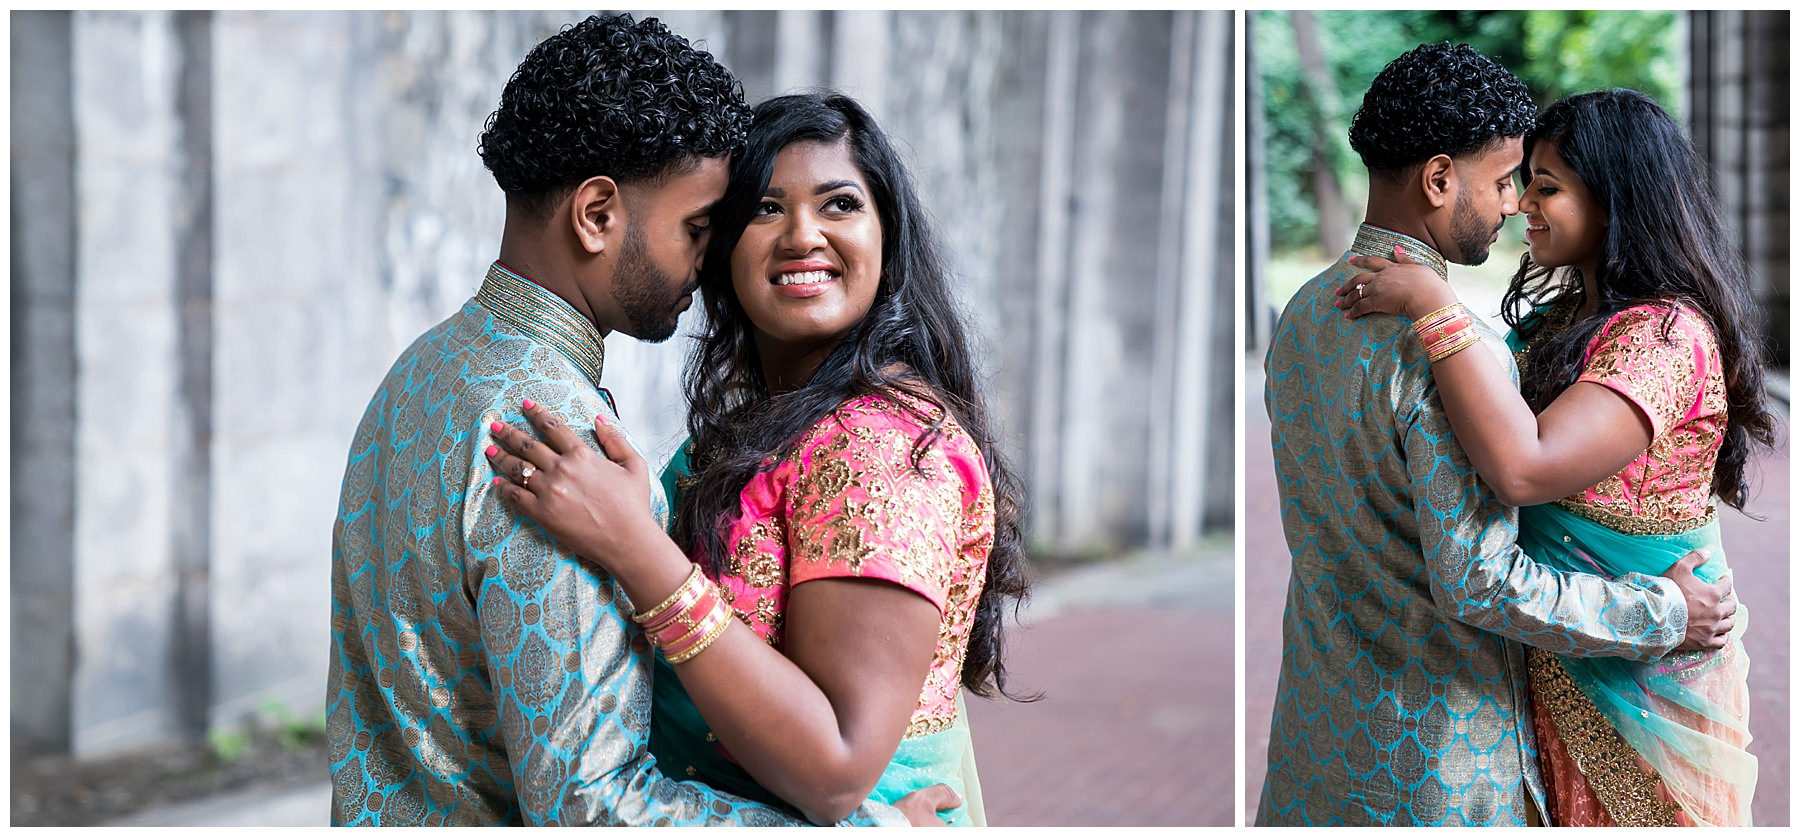 fort-tysons-park-new-york-engagement-shoot-sibyl-jithin-12.jpg